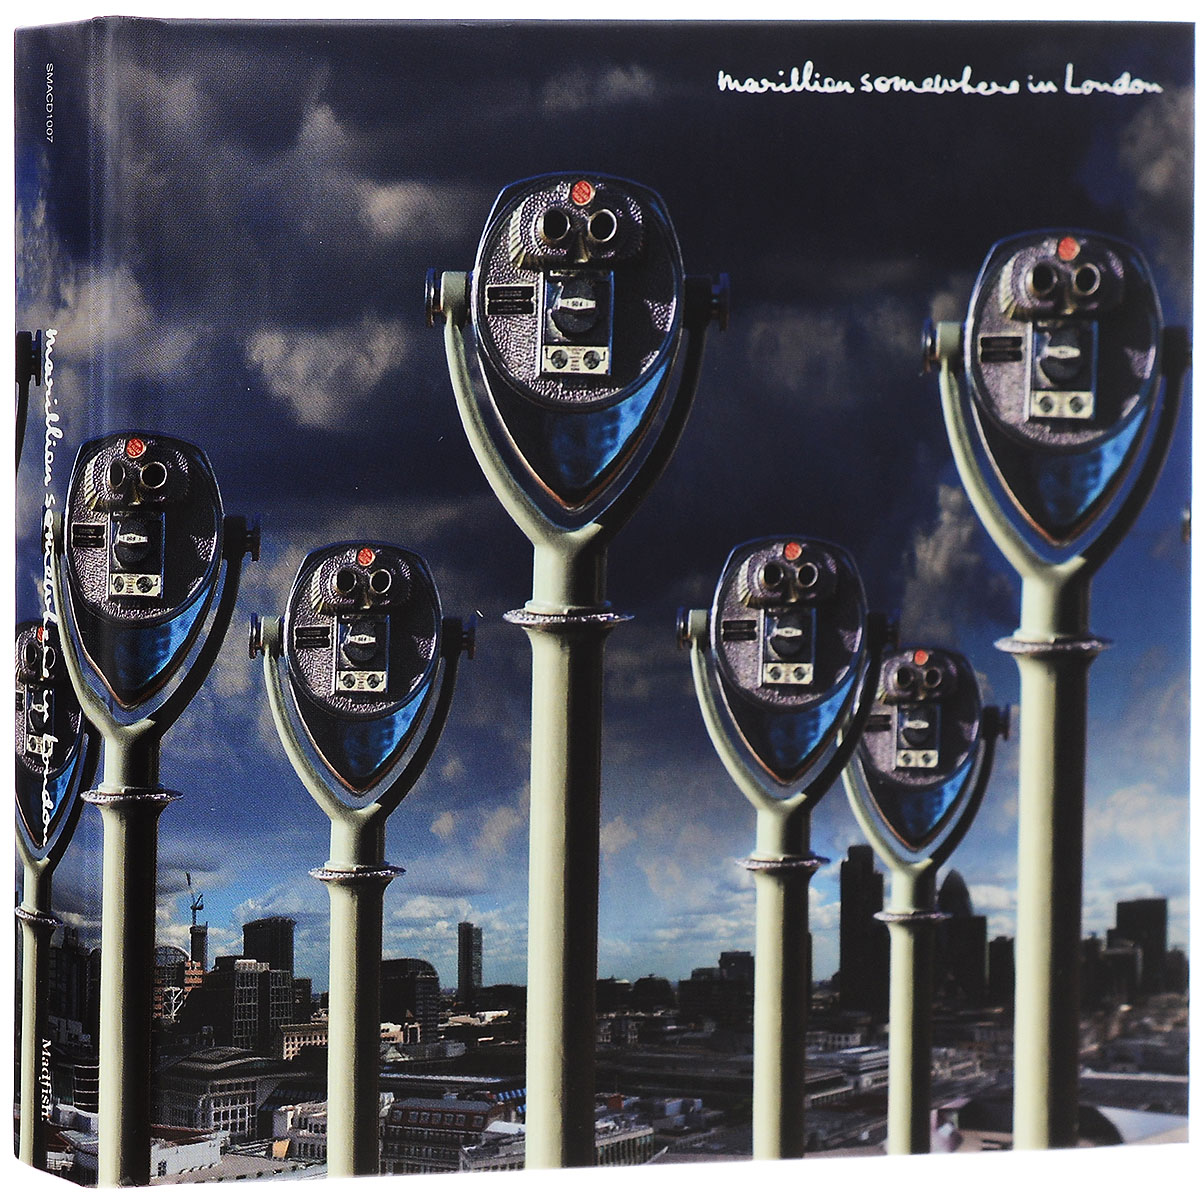 Marillion Marillion. Somewhere In London (2 CD + DVD) yes yes in the present live from lyon 2 cd dvd